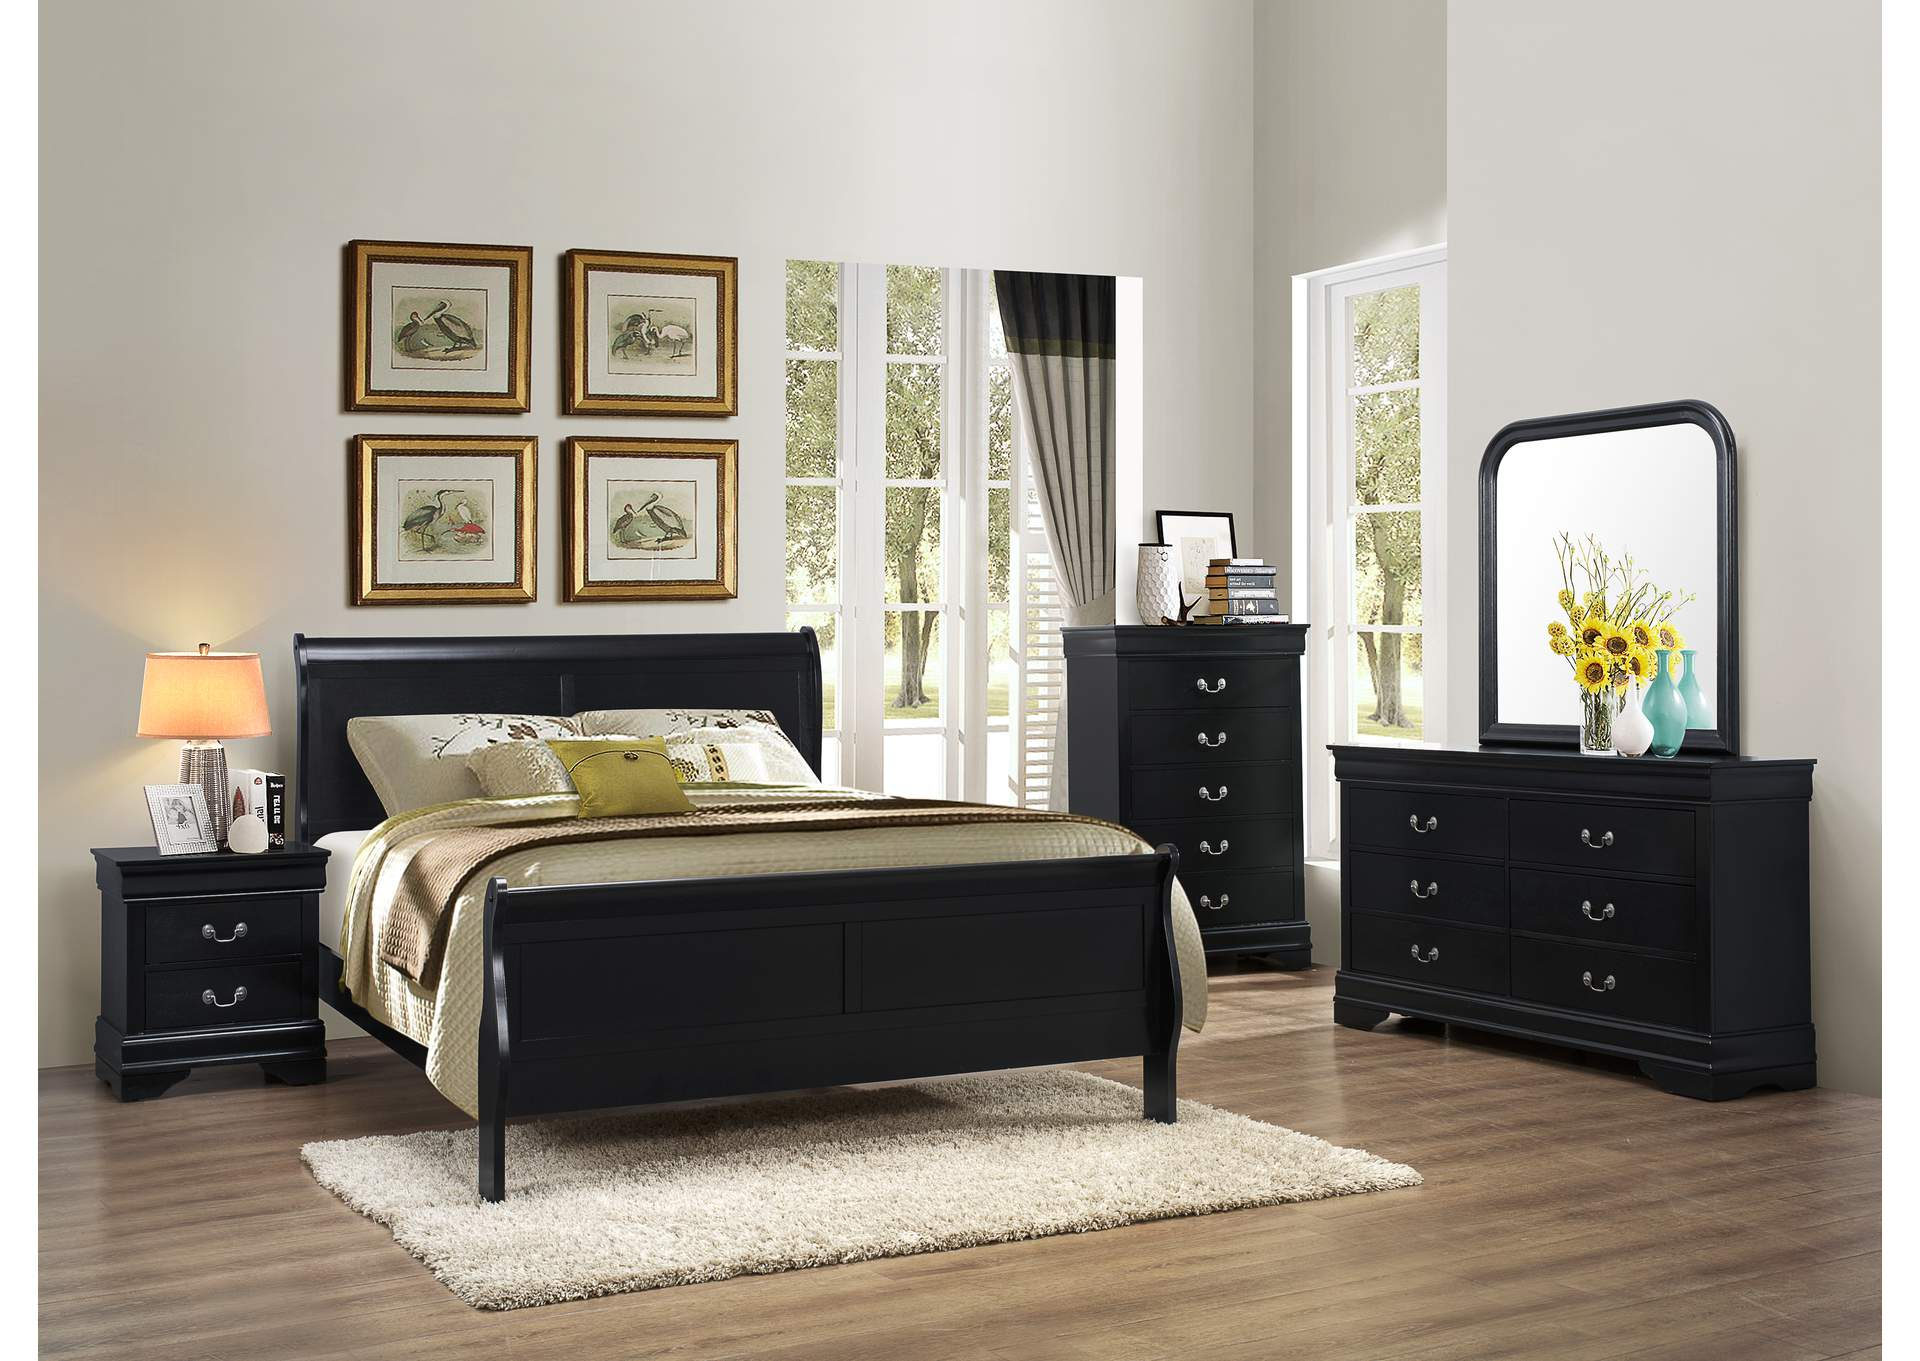 Black Sleigh Queen 4 Piece Bedroom Set W/ Chest, Dresser & Mirror,Global Trading